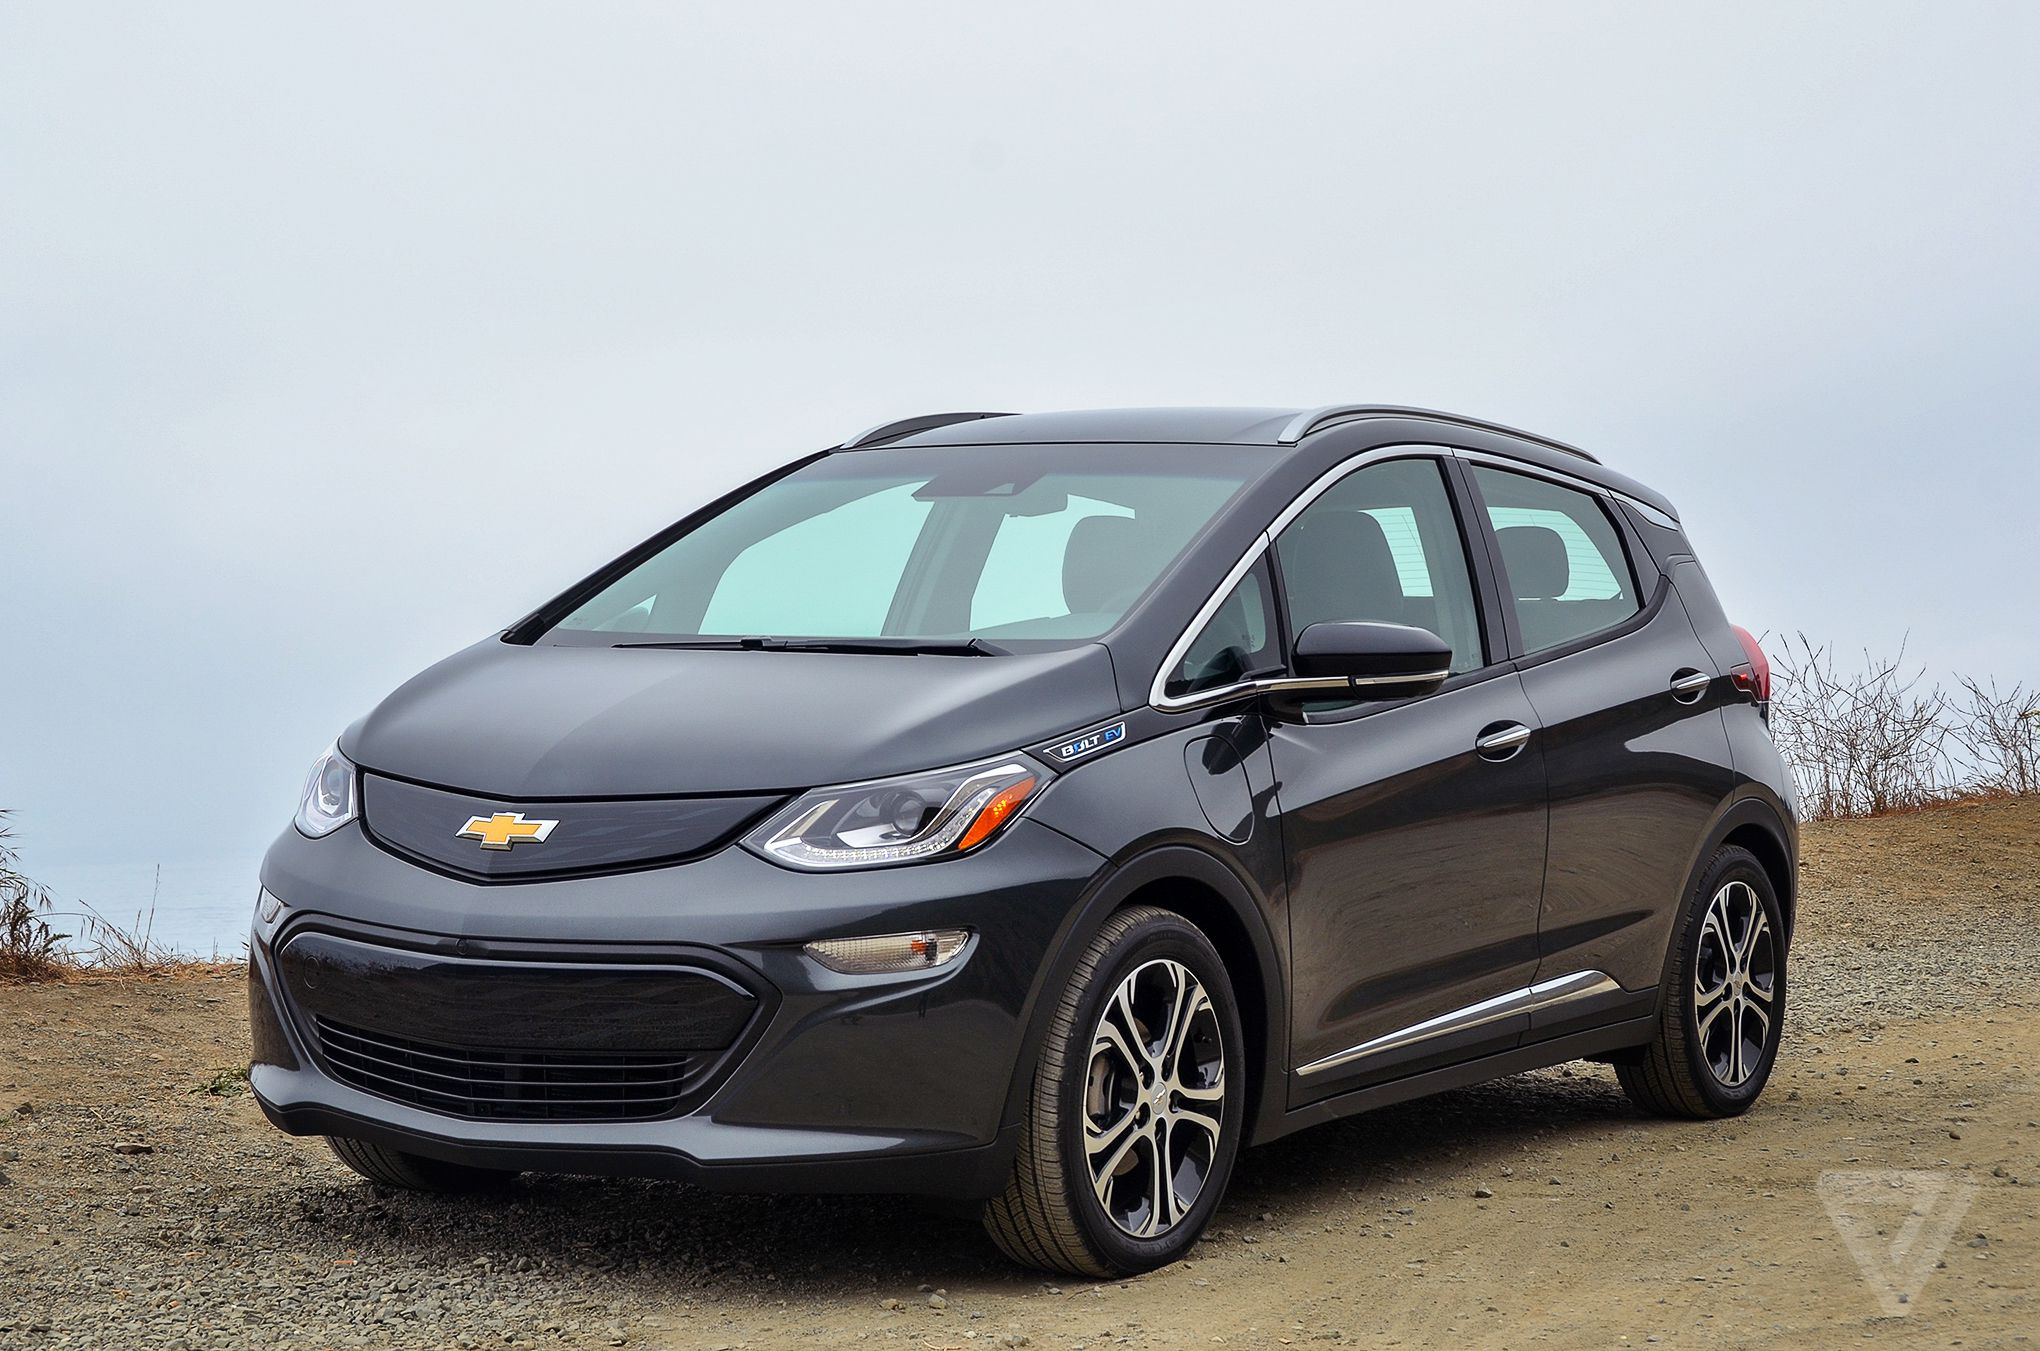 The Chevy Bolt is electric, but that's not the really good part